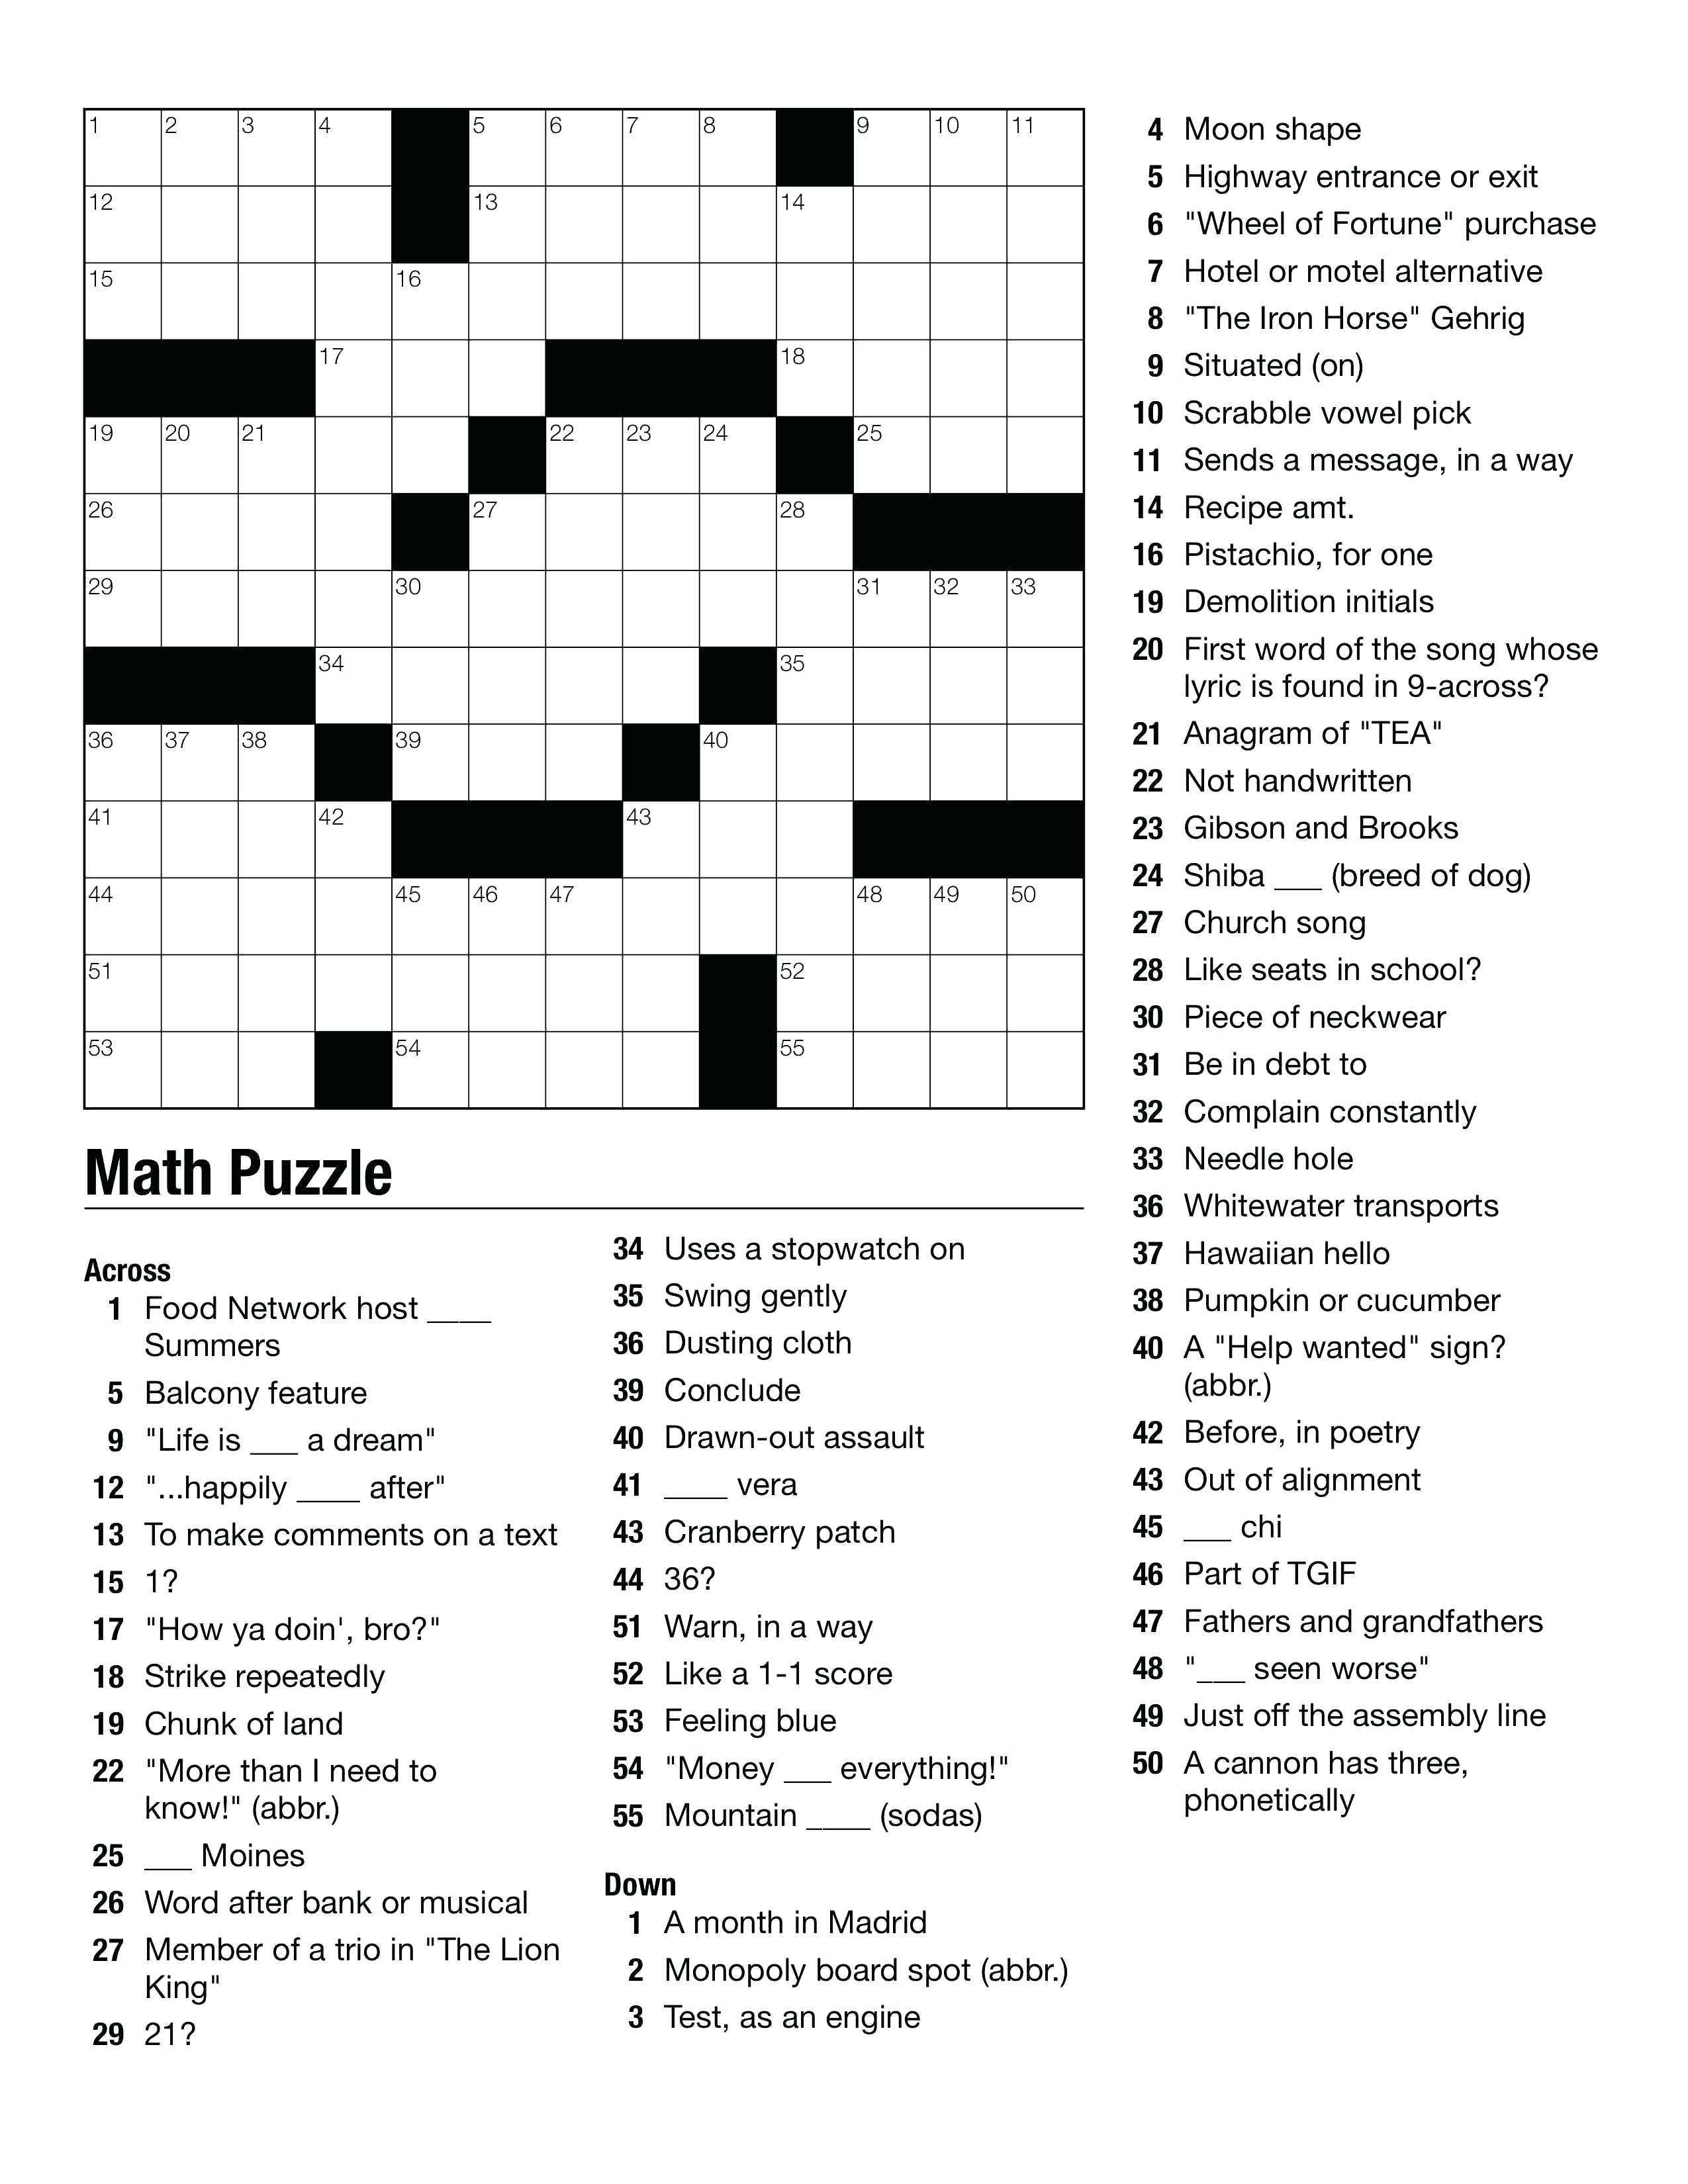 Geometry Puzzles Math Geometry Images Teaching Ideas On Crossword - Math Crossword Puzzles Printable